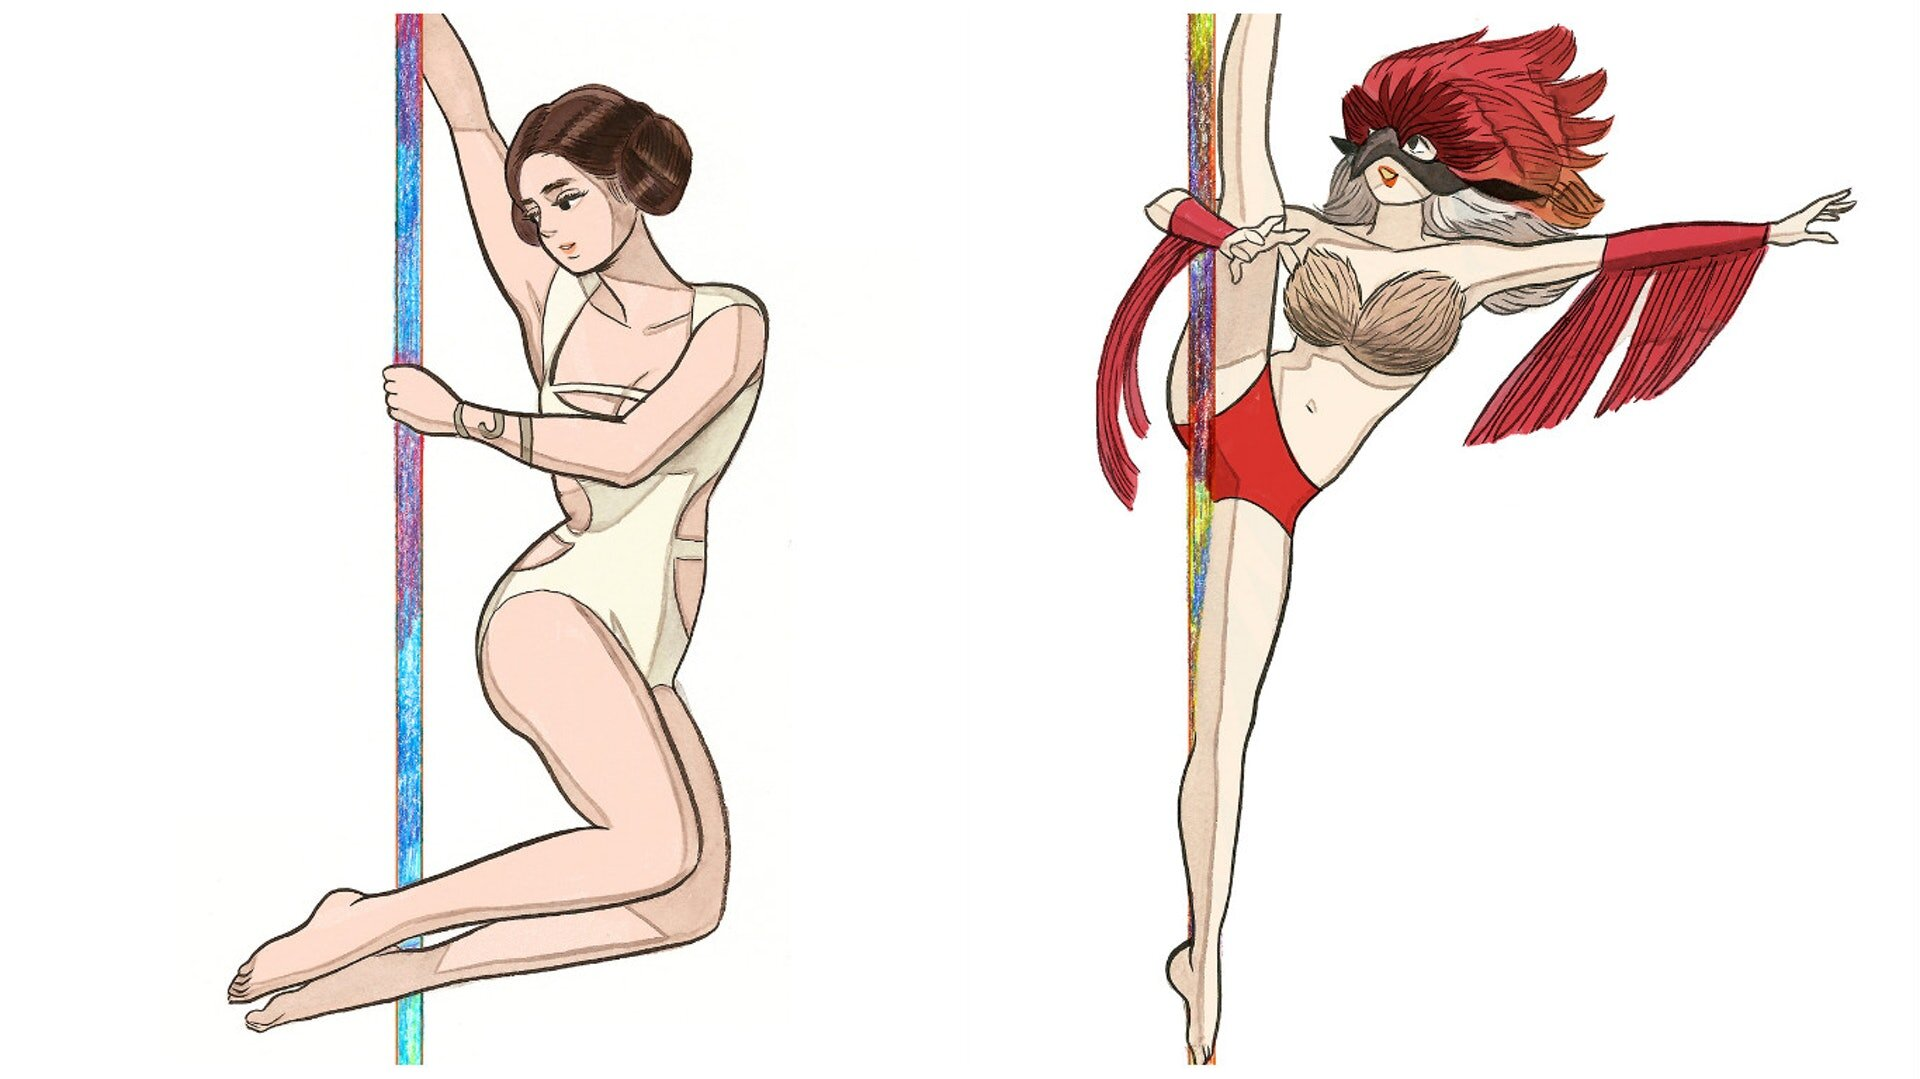 Illustrations by Little Thunder from her book   Blister Exists  , a 1,200 page volume of pole dancing poses.